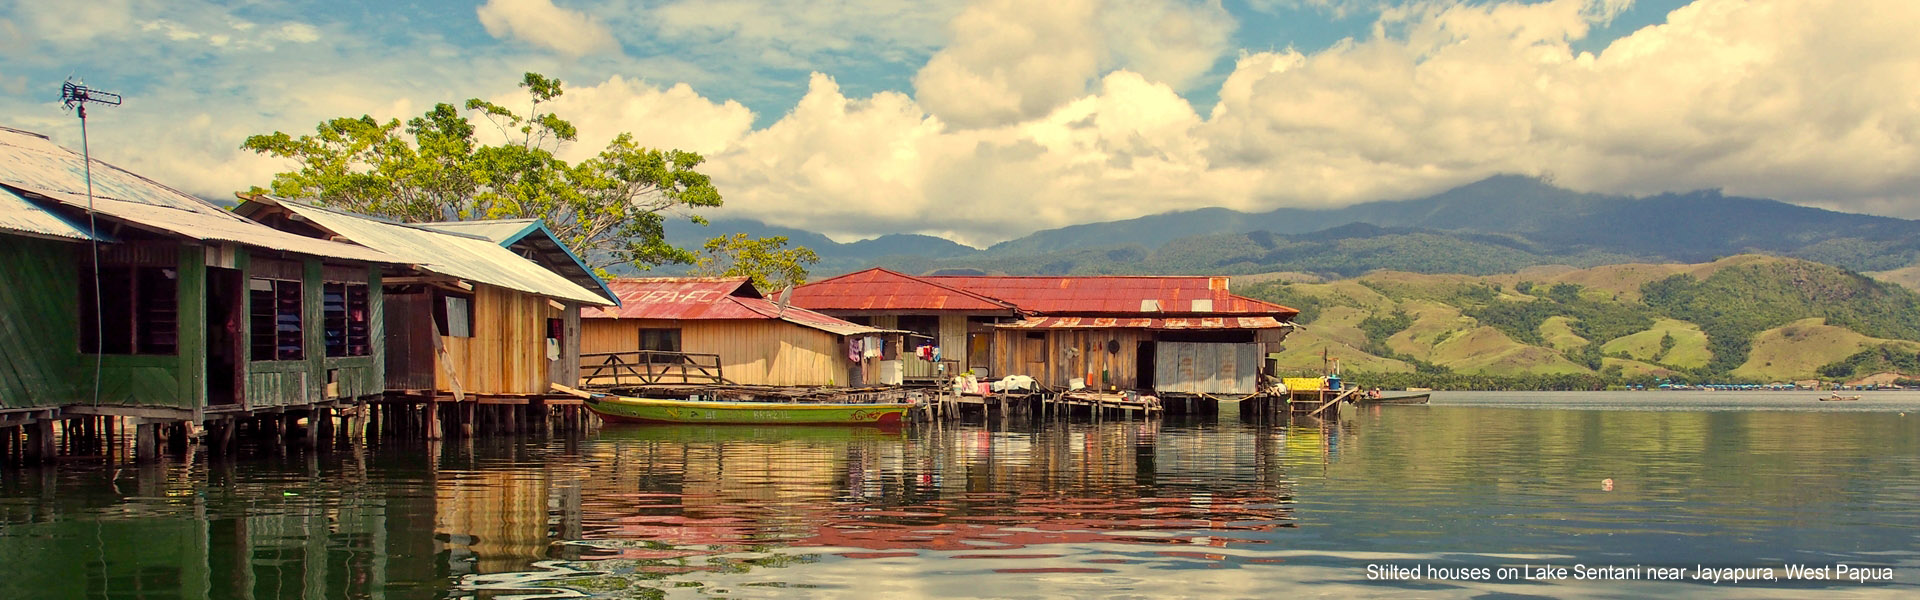 Stilted houses on Lake Sentani, Jayapura, West Papua